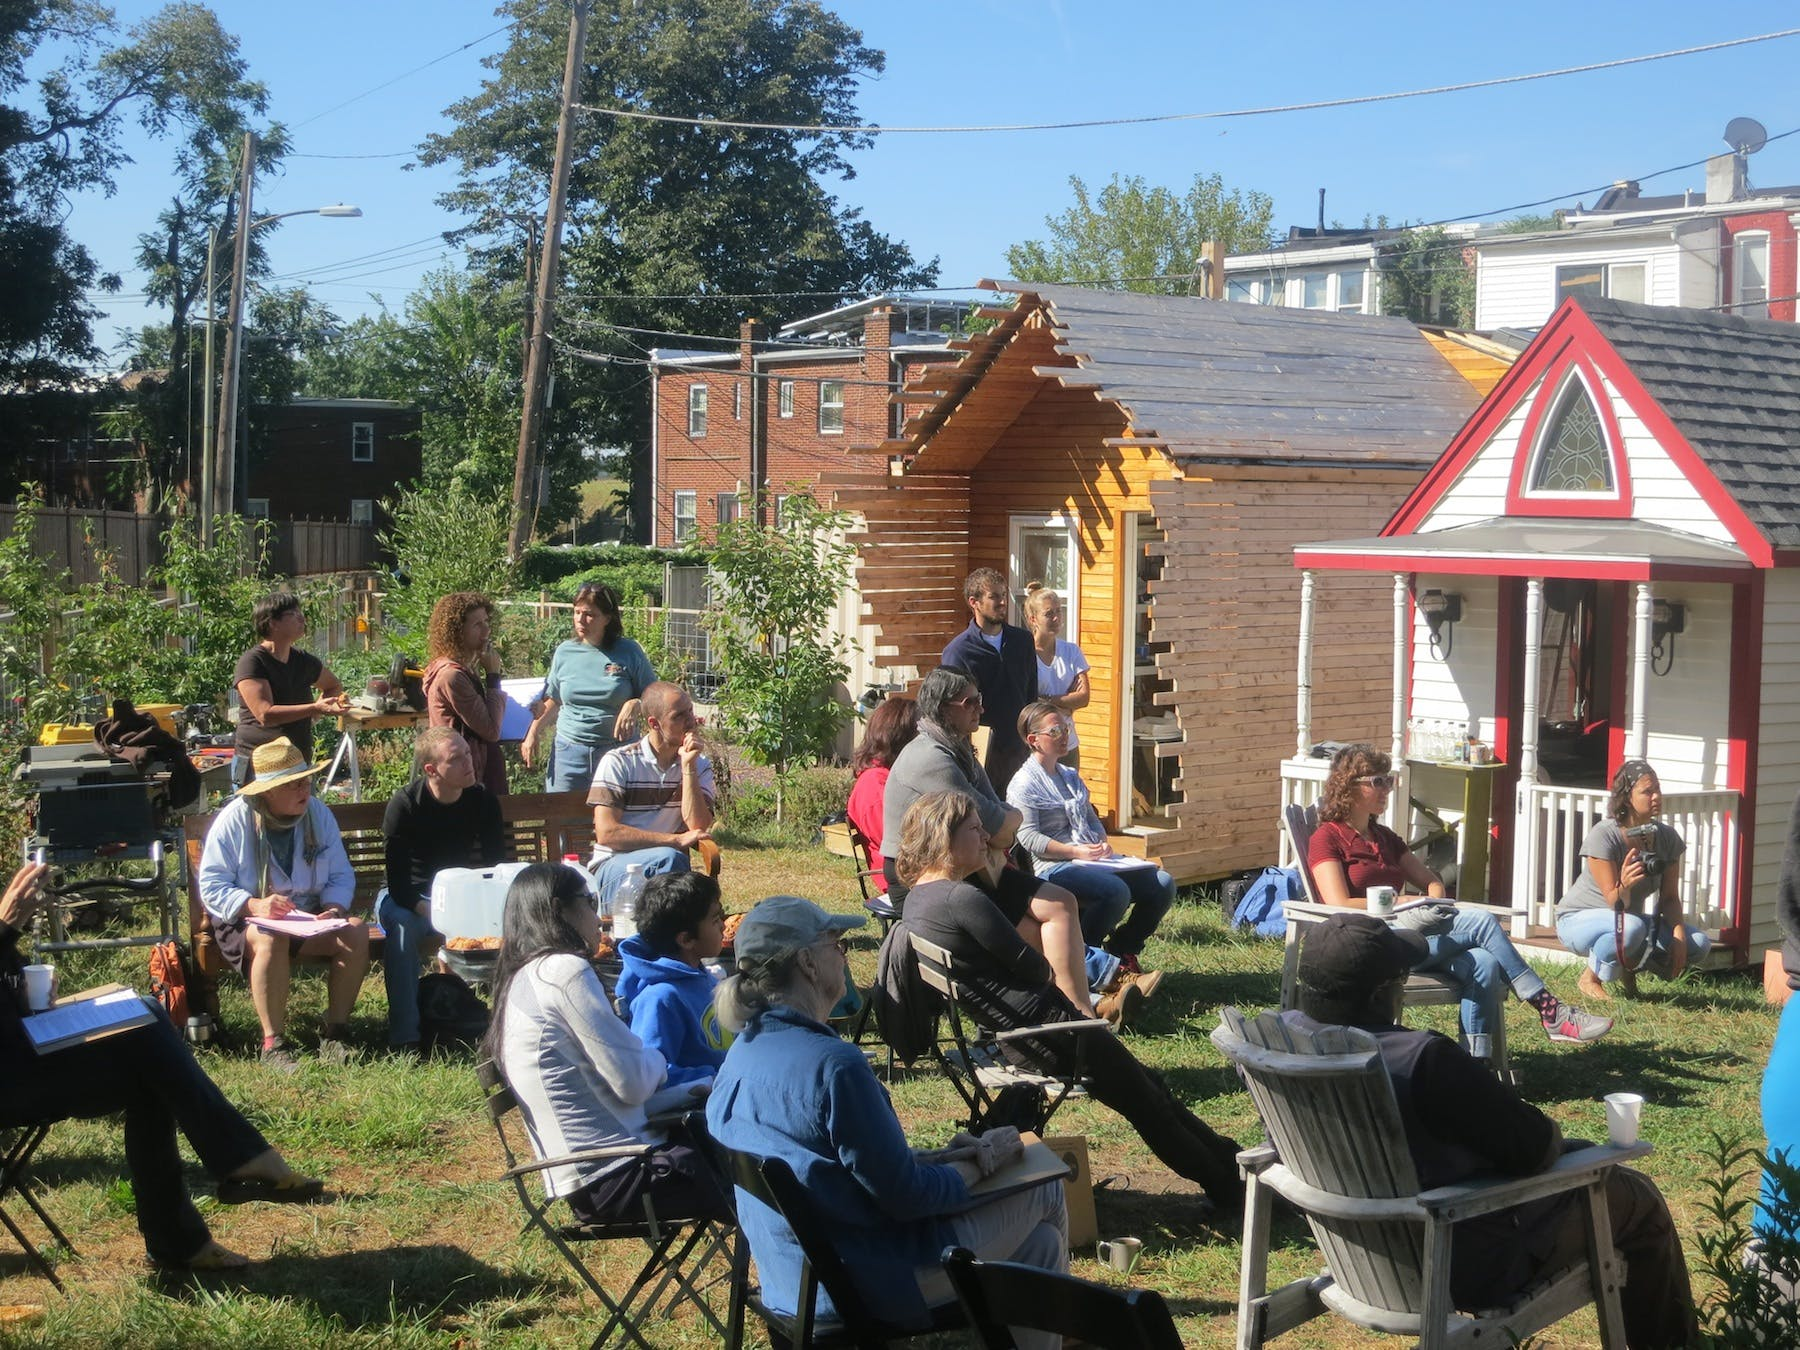 Prototyping: Tiny House Design Workshop   Features   Archinect on front yard sidewalk designs, small yard garden designs, home yard designs, small yard ideas landscaping designs, pretty yard designs, tiny house design, front yard courtyard designs, no lawn front yard designs, narrow yard designs, fall yard designs, northwest front yard landscaping designs, front yard planter designs, vertical garden designs, florida front yard landscape designs, container garden designs, yard and garden designs, tiny apartment yards, tiny clock movements, small bathrooms designs, large yard designs,